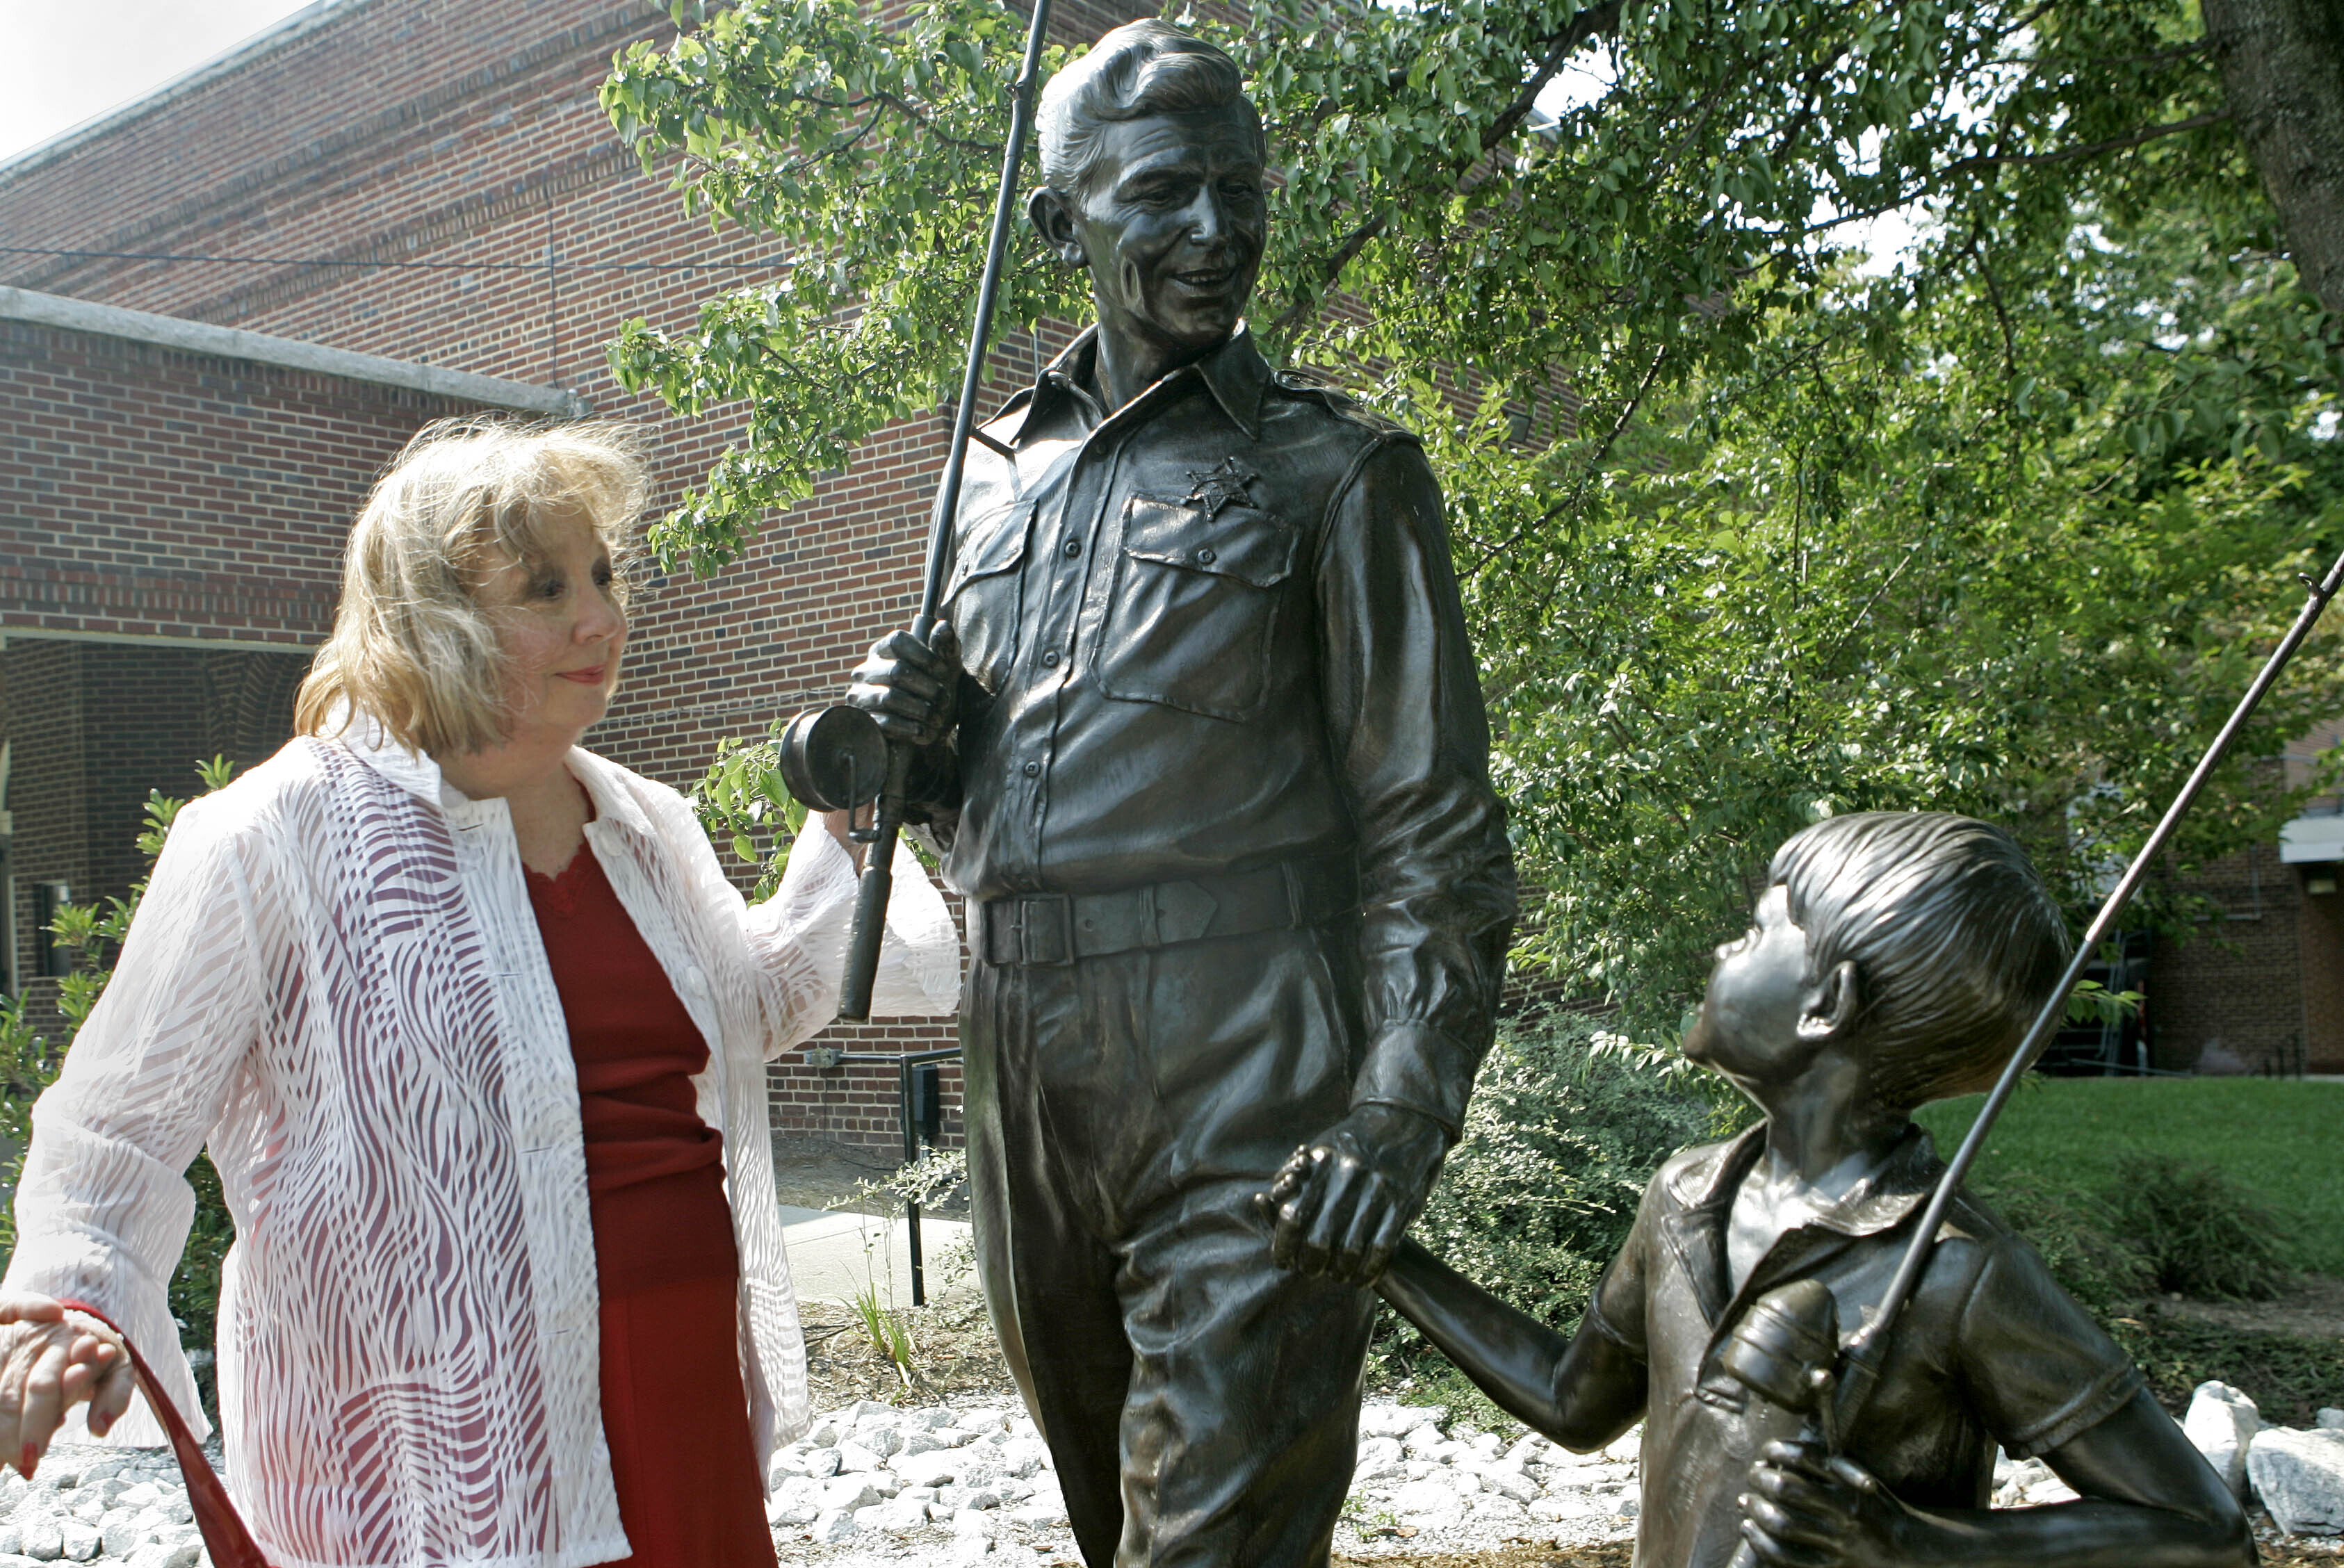 """In this Sept. 6, 2007 file photo, actor Betty Lynn, who played Thelma Lou on """"The Andy Griffith Show,"""" pauses at a statue of Andy and Opie Taylor in Mount Airy, N.C. Lynn died Saturday, Oct. 16, 2021, after a brief illness."""